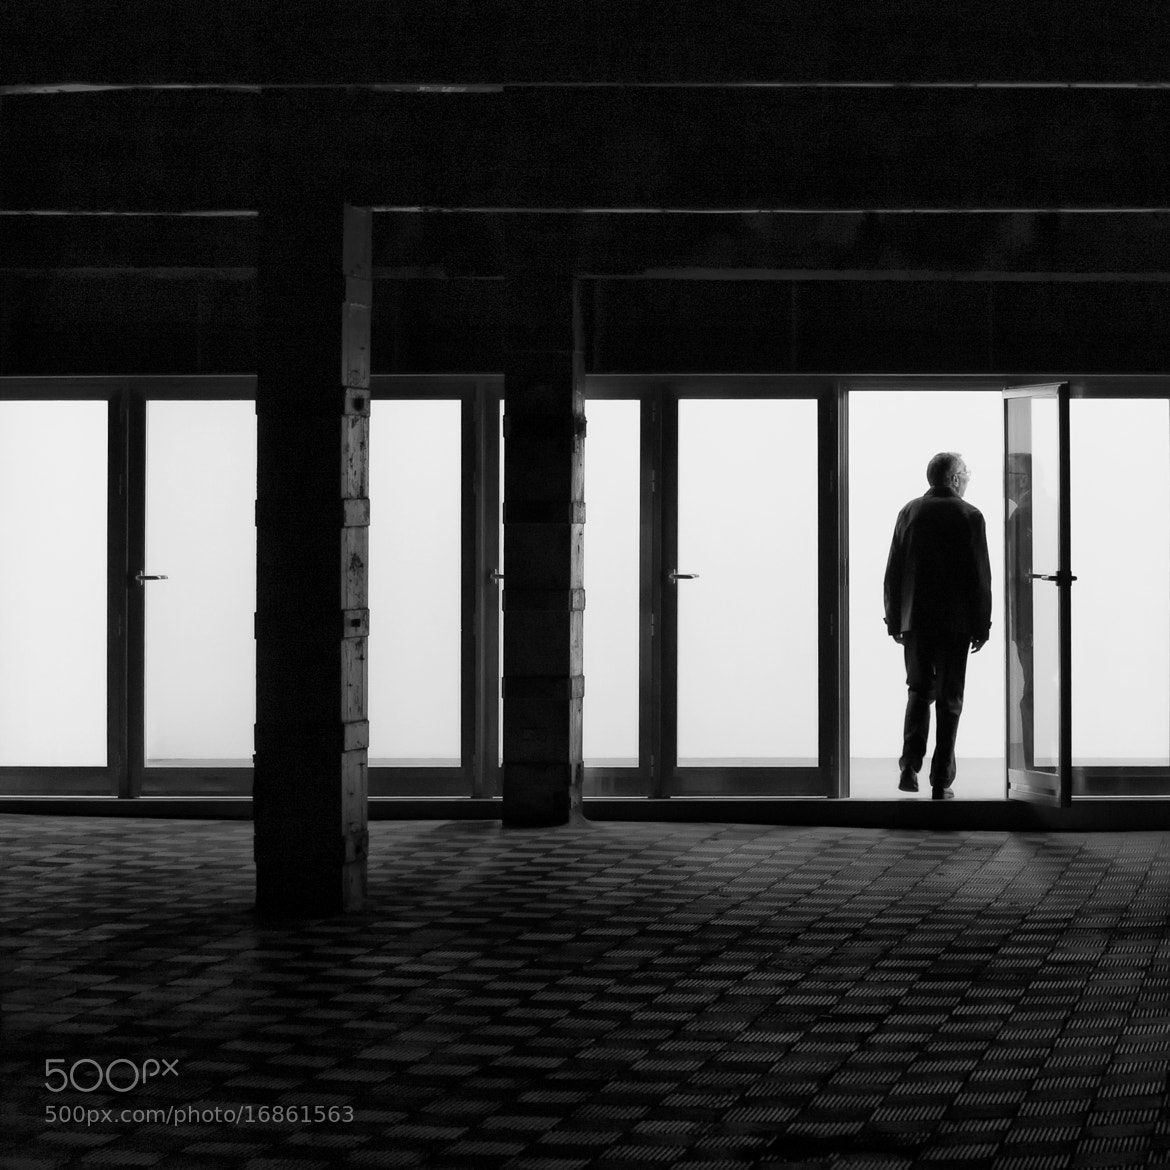 Photograph EXIT by Fermín Noain on 500px